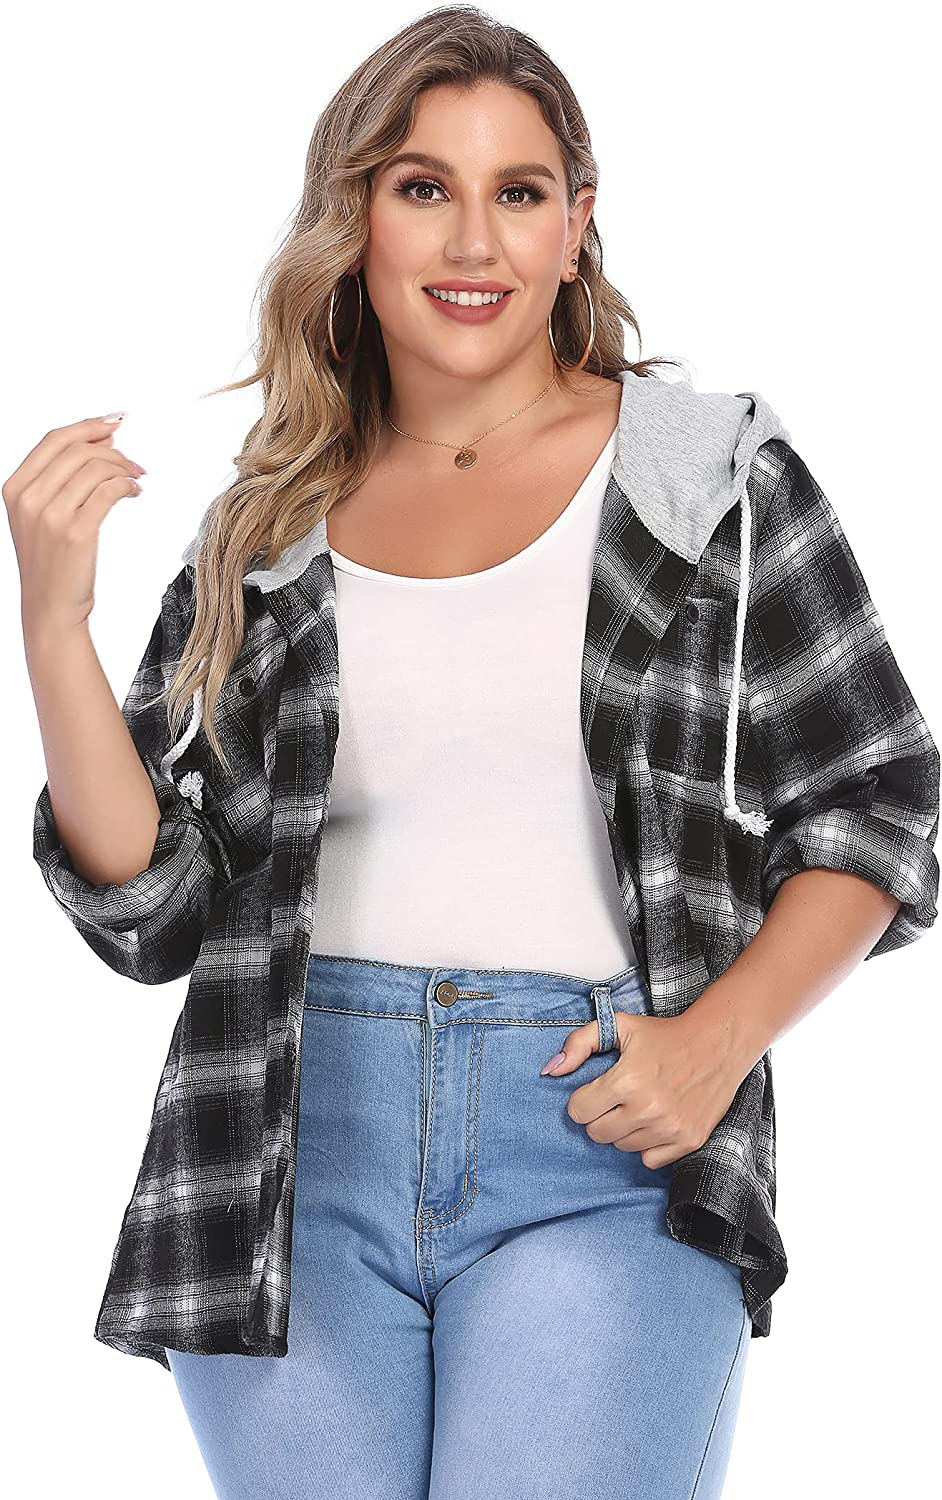 IN'VOLAND Womens Plus Size Flannel Plaid Hoodie Long Sleeve Plaid Shirt Jacket with Hood Button Down Casual Shirts 16W-28W